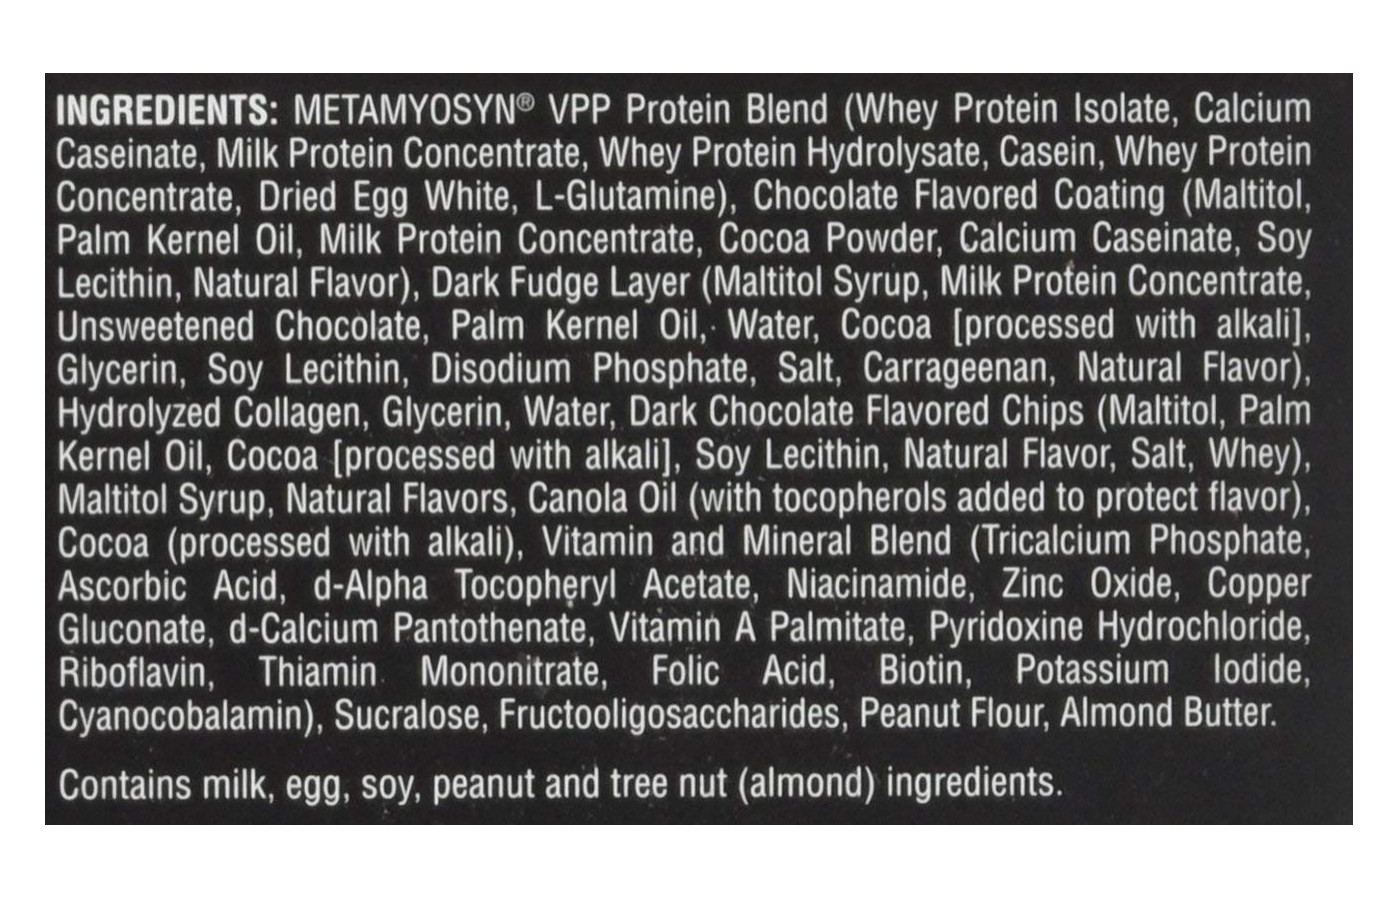 metrx ingredients